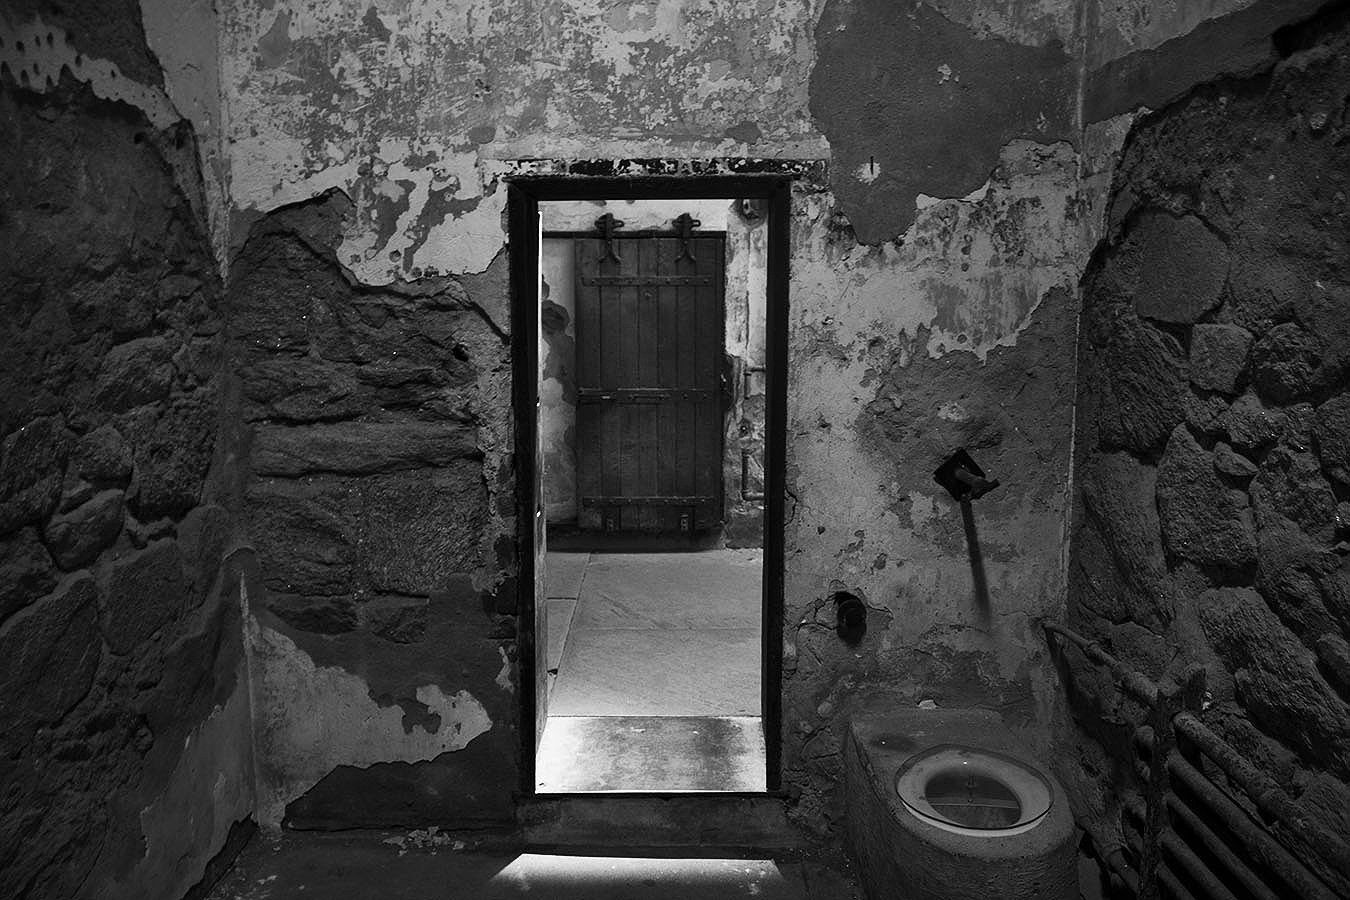 brian_schoenauer_photography_eastern_state_penitentiary_cell_inside_toilet_black_white